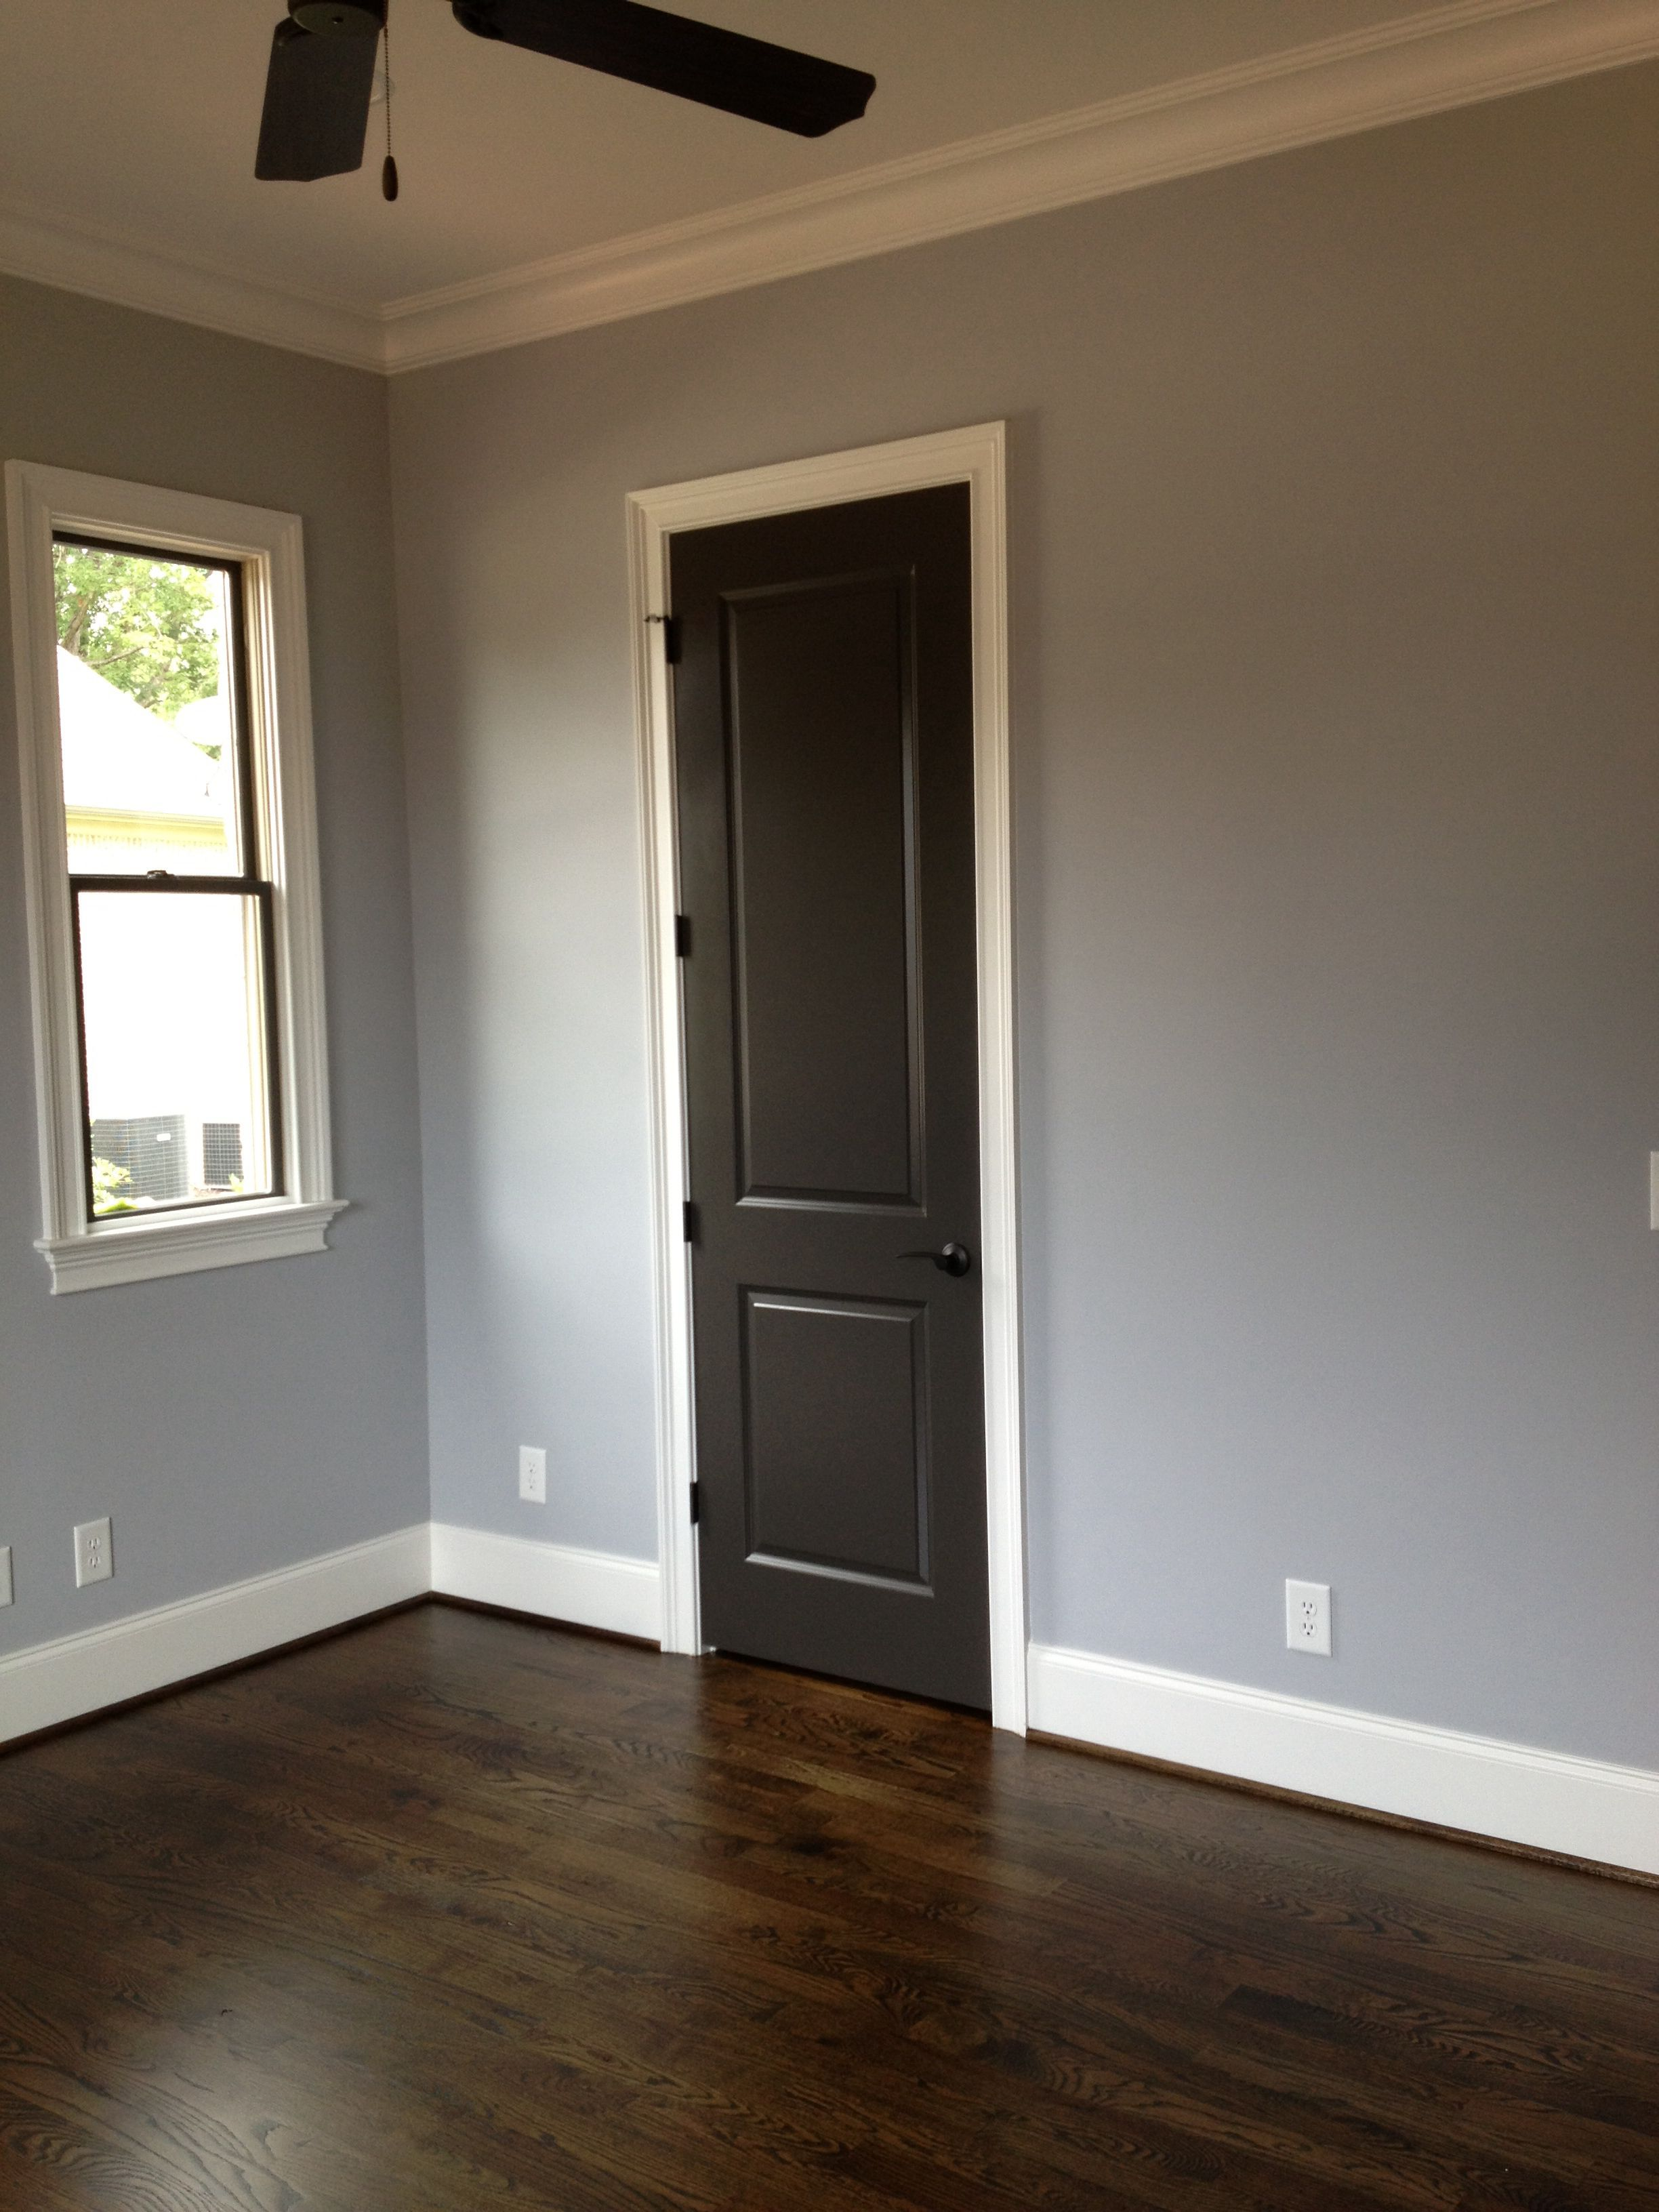 Attrayant Sherwin Williams Lazy Gray And Urbane Bronze On Doors And Window Interior  Trim. Our Guest Room Colors.